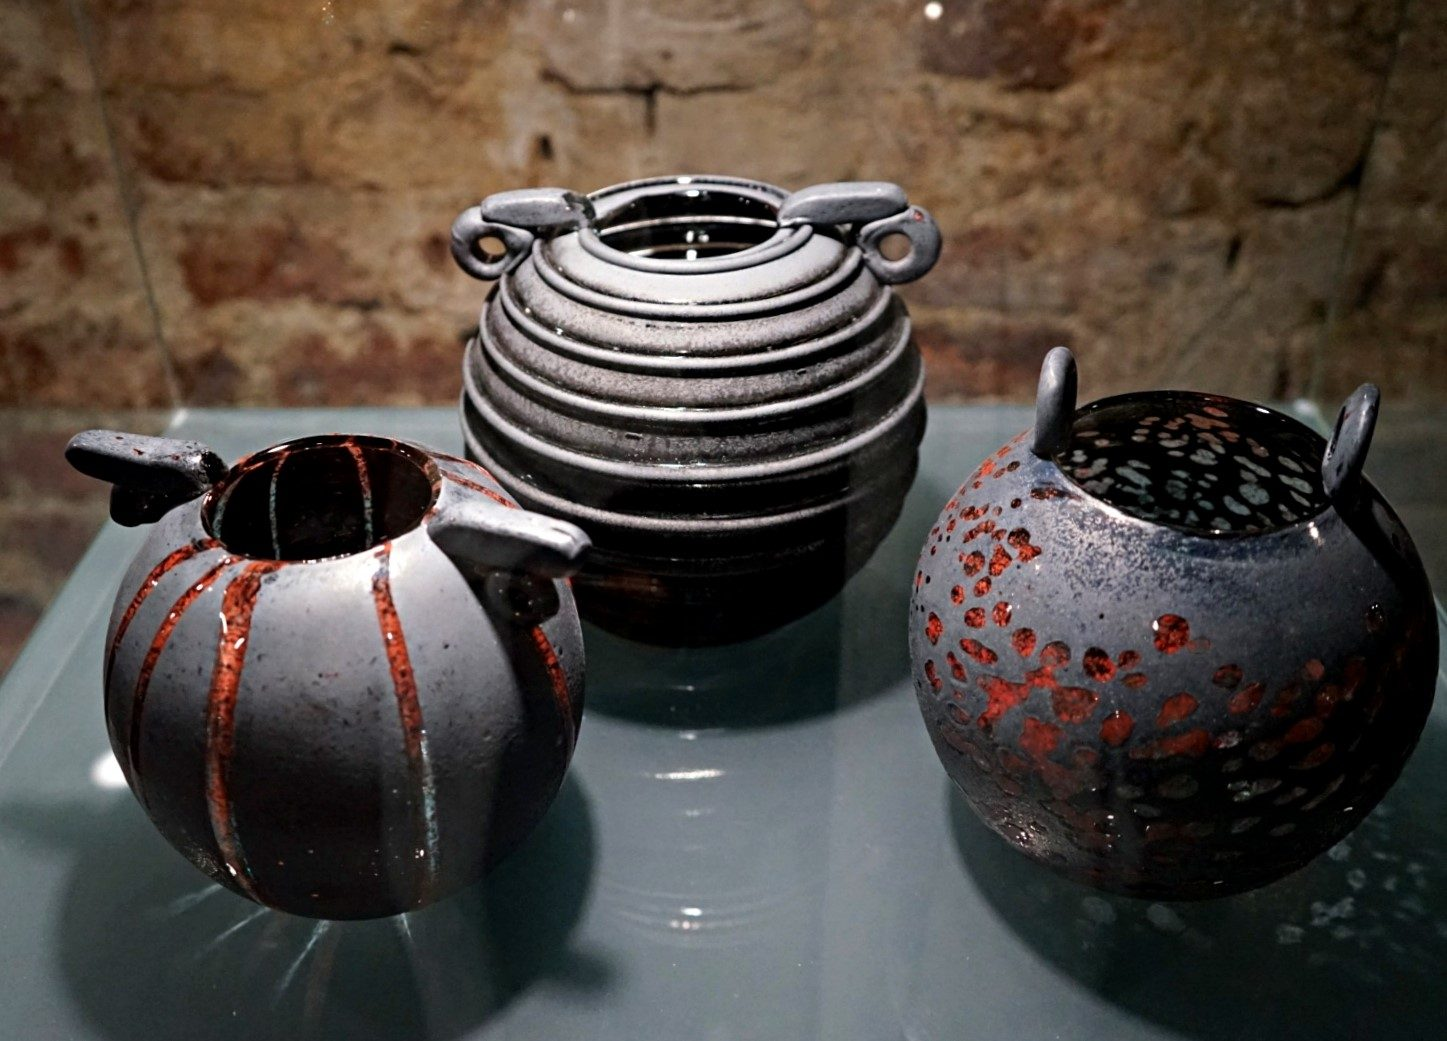 The exhibition in museum of glass